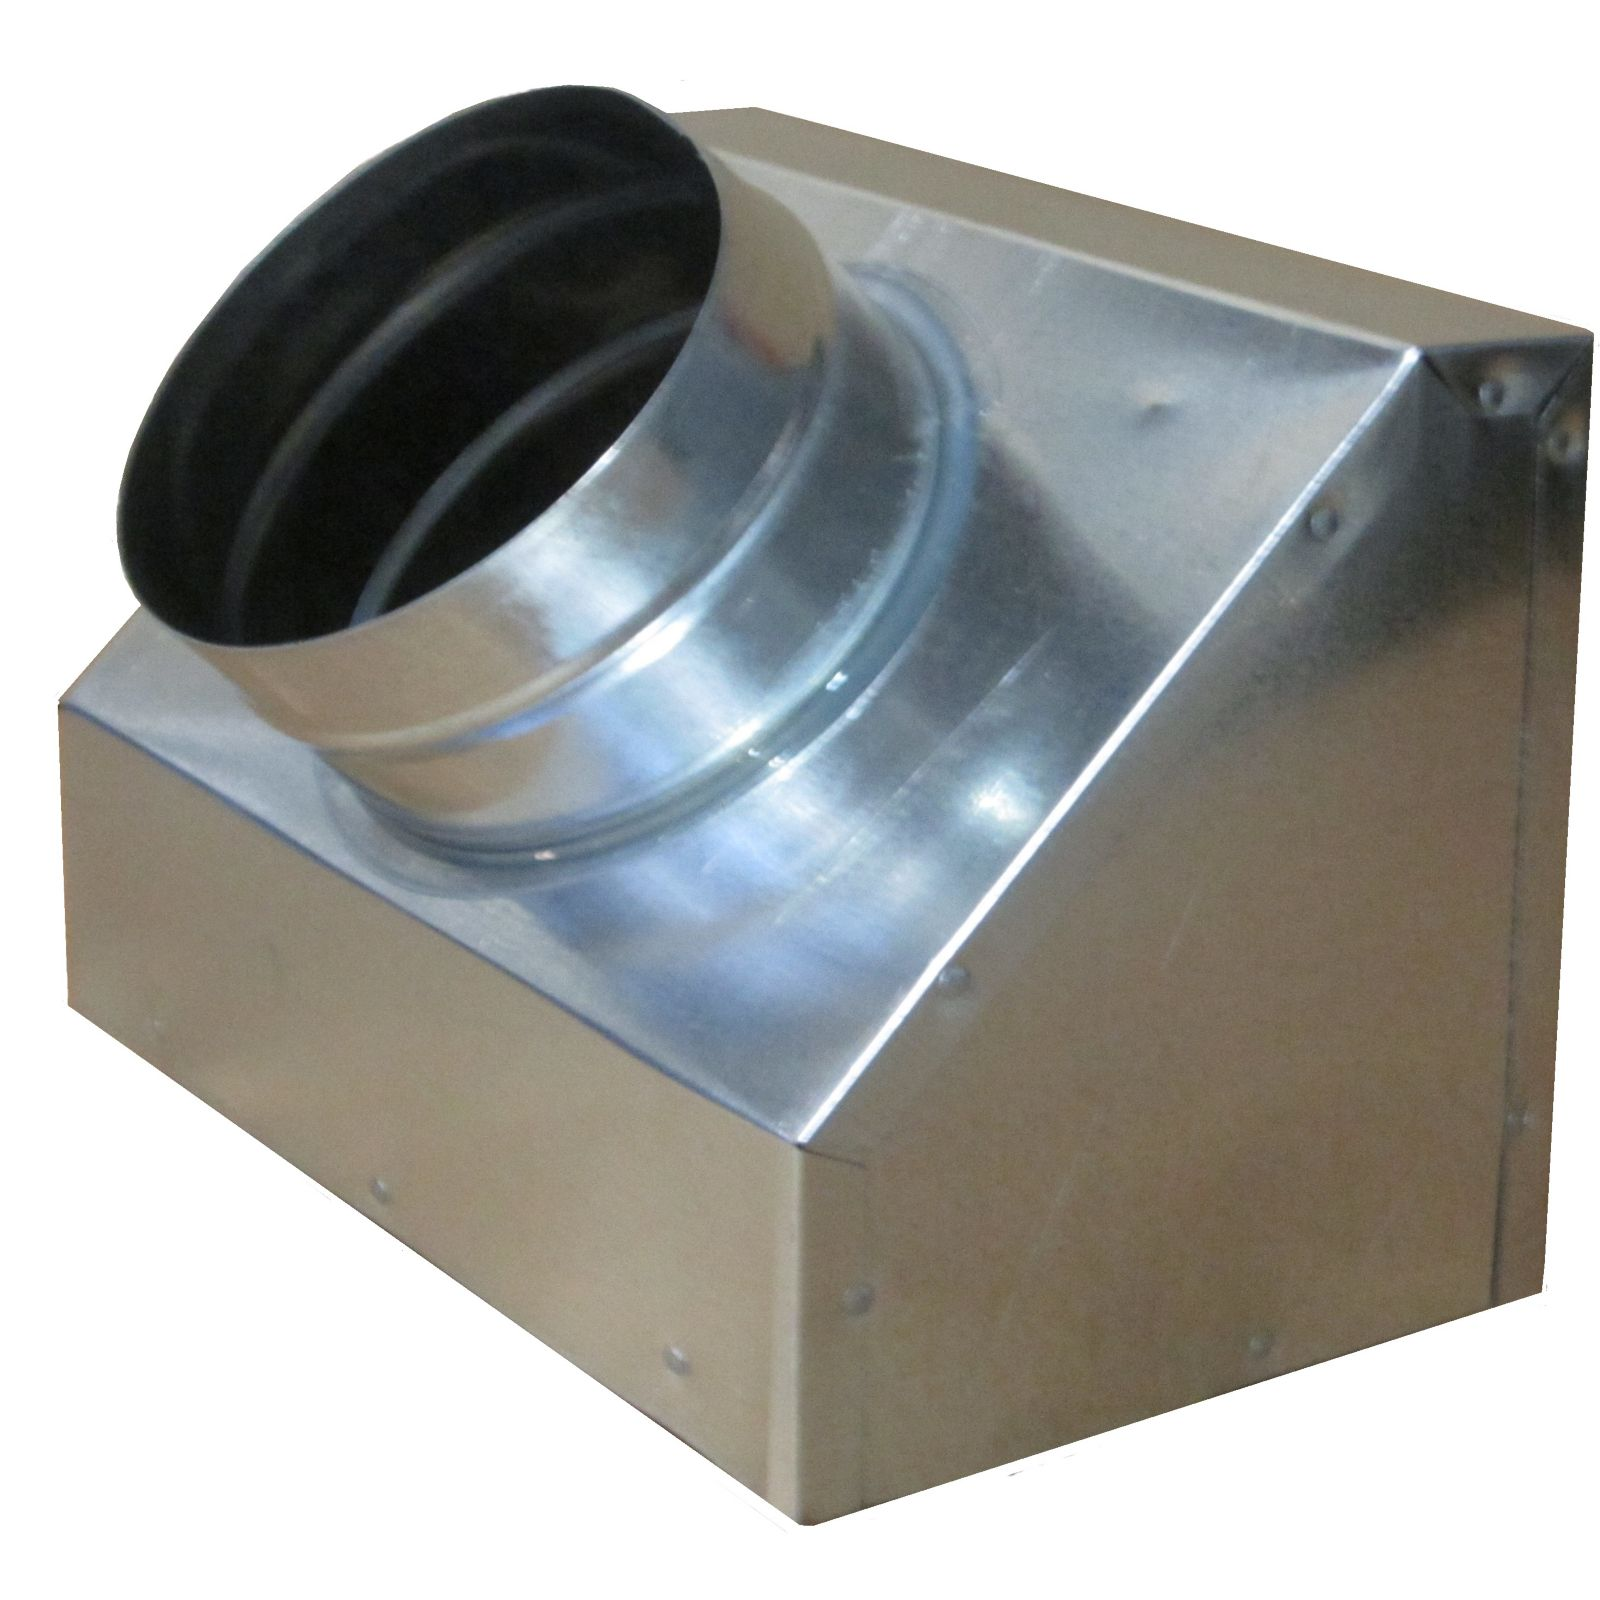 "Snap-Rite 08X04X043685FS - Insulated 45a° Slant Register Box, With Flange, 8 1/2"" Deep, 08"" x 04"" x 04"" - R6"